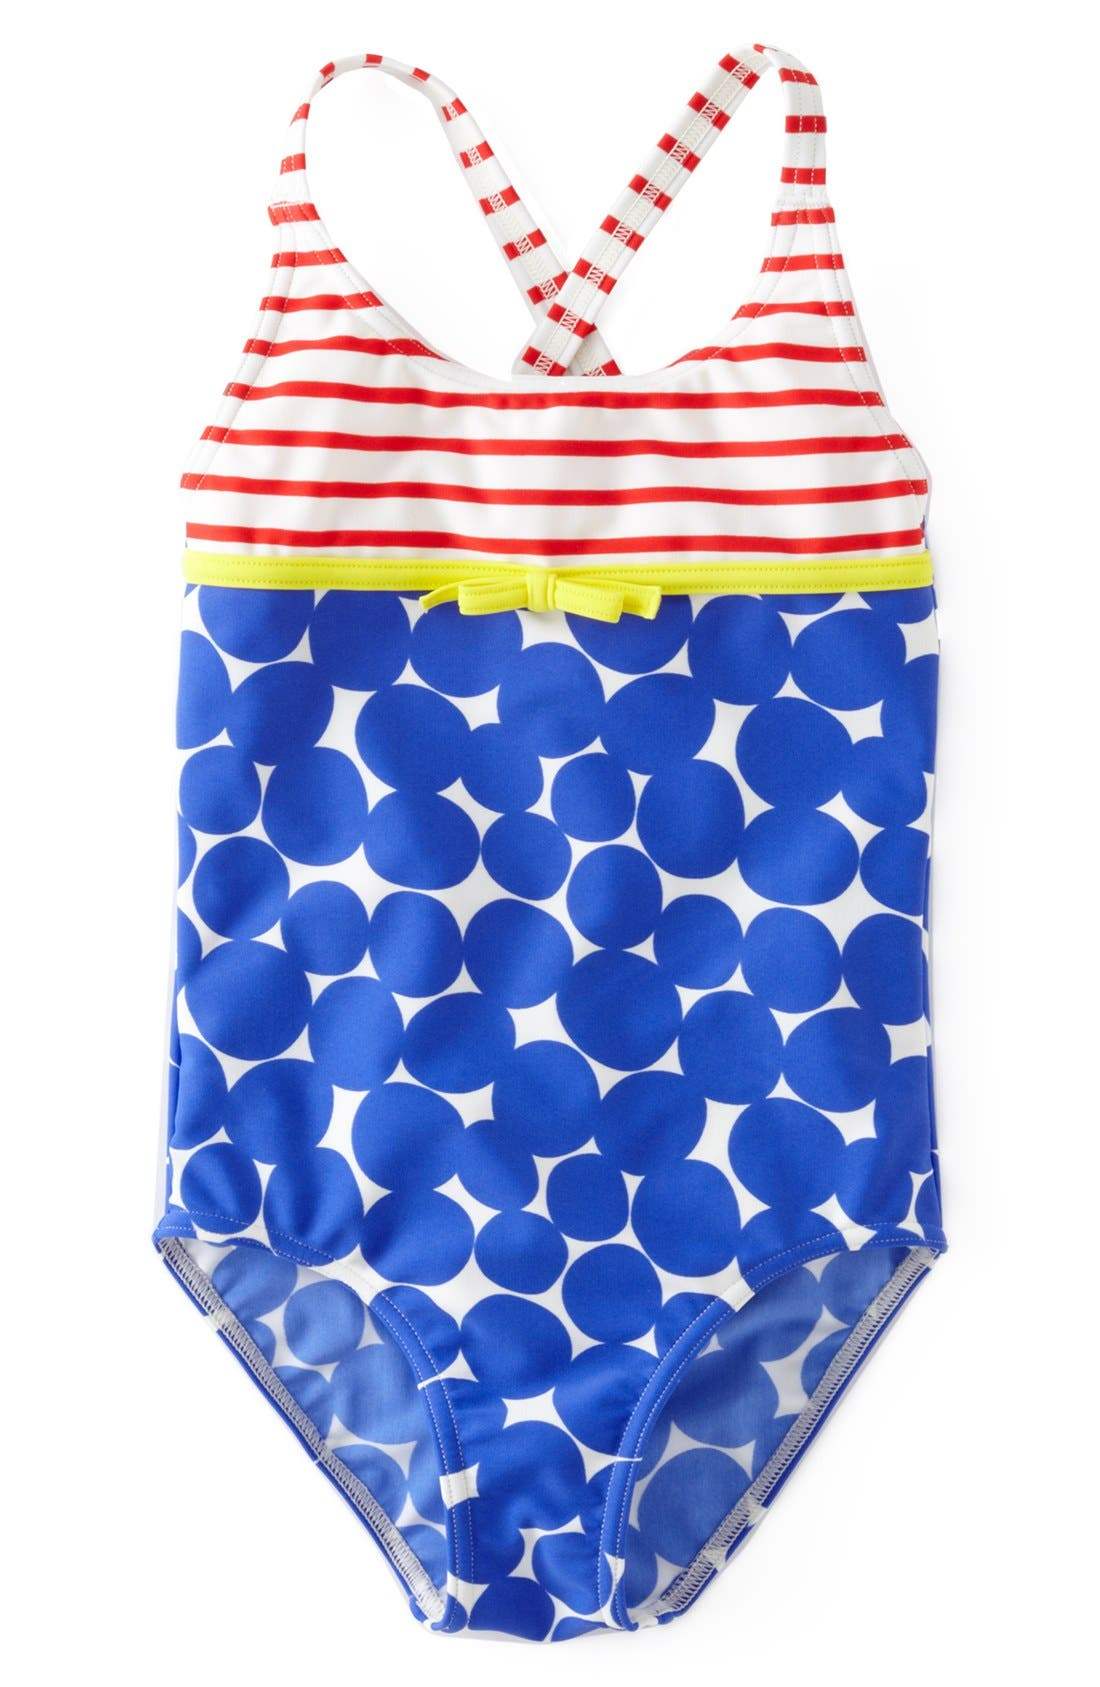 Alternate Image 1 Selected - Mini Boden 'Hopscotch' One-Piece Swimsuit (Little Girls & Big Girls)